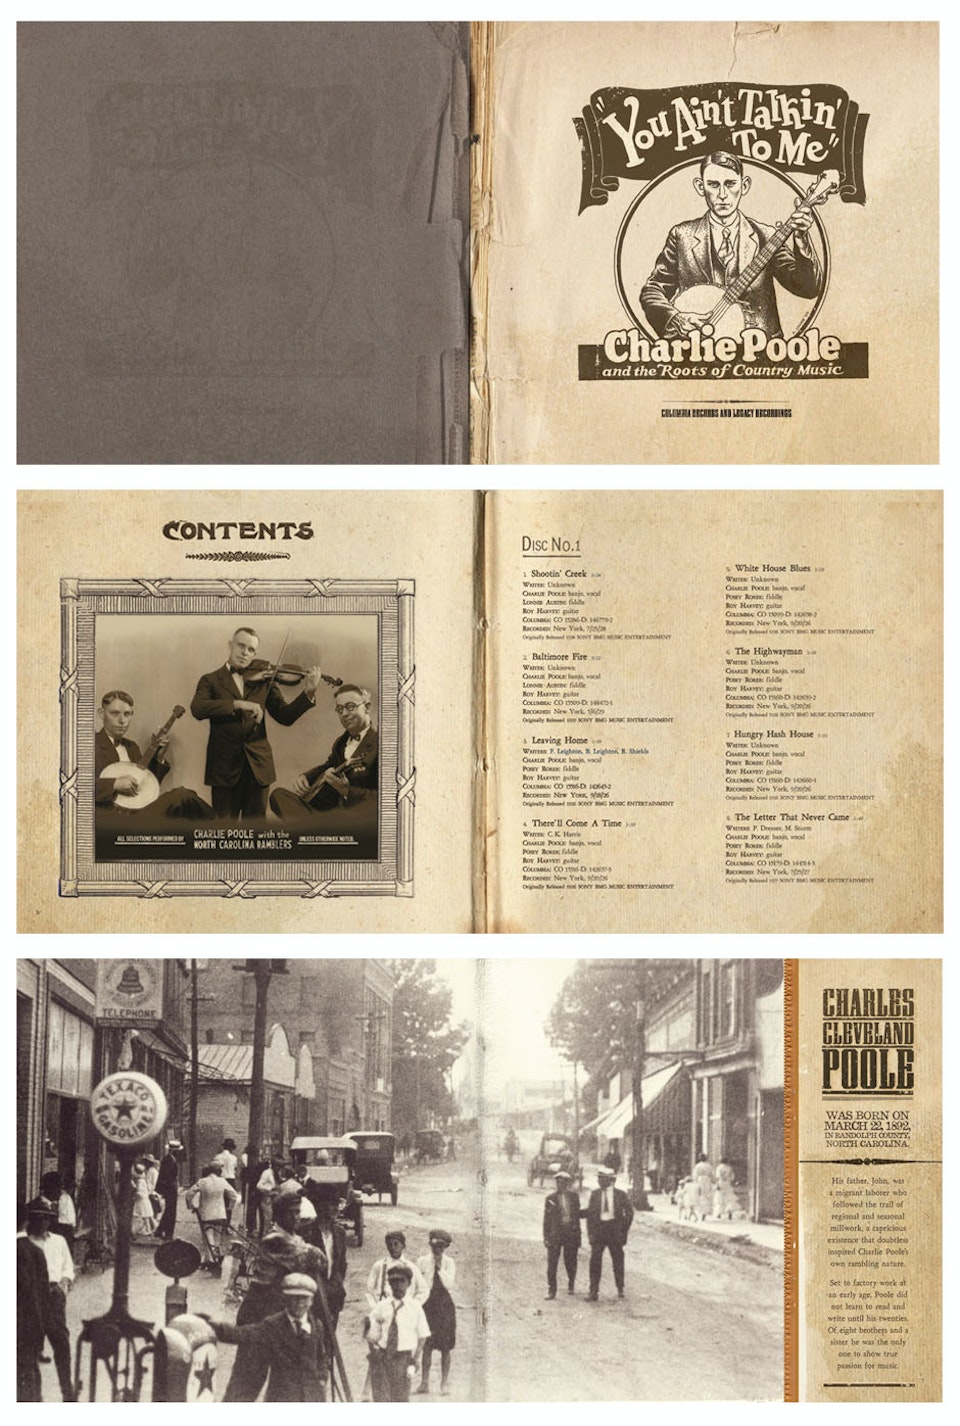 Grammy Nominated Charlie Poole You Ain't Talkin' To Me Box Set - Booklet spreads